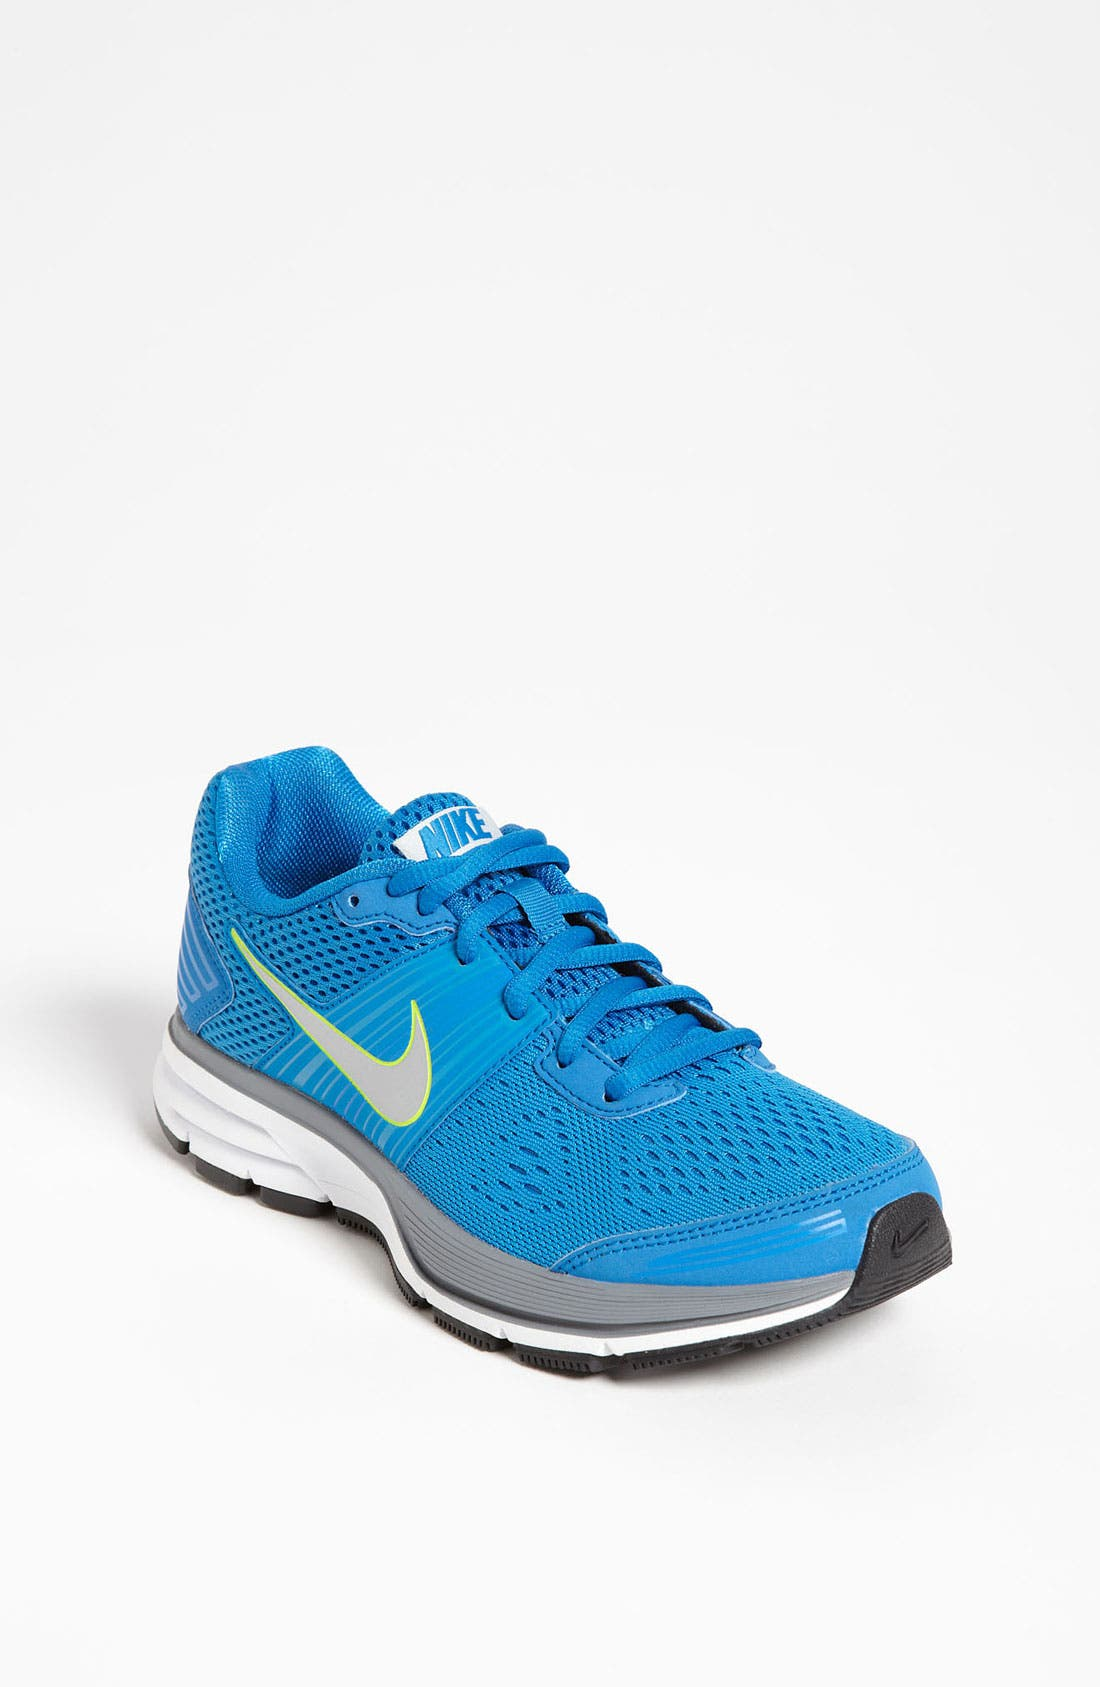 Main Image - Nike 'Air Pegasus+ 29' Athletic Shoe (Little Kid & Big Kid)